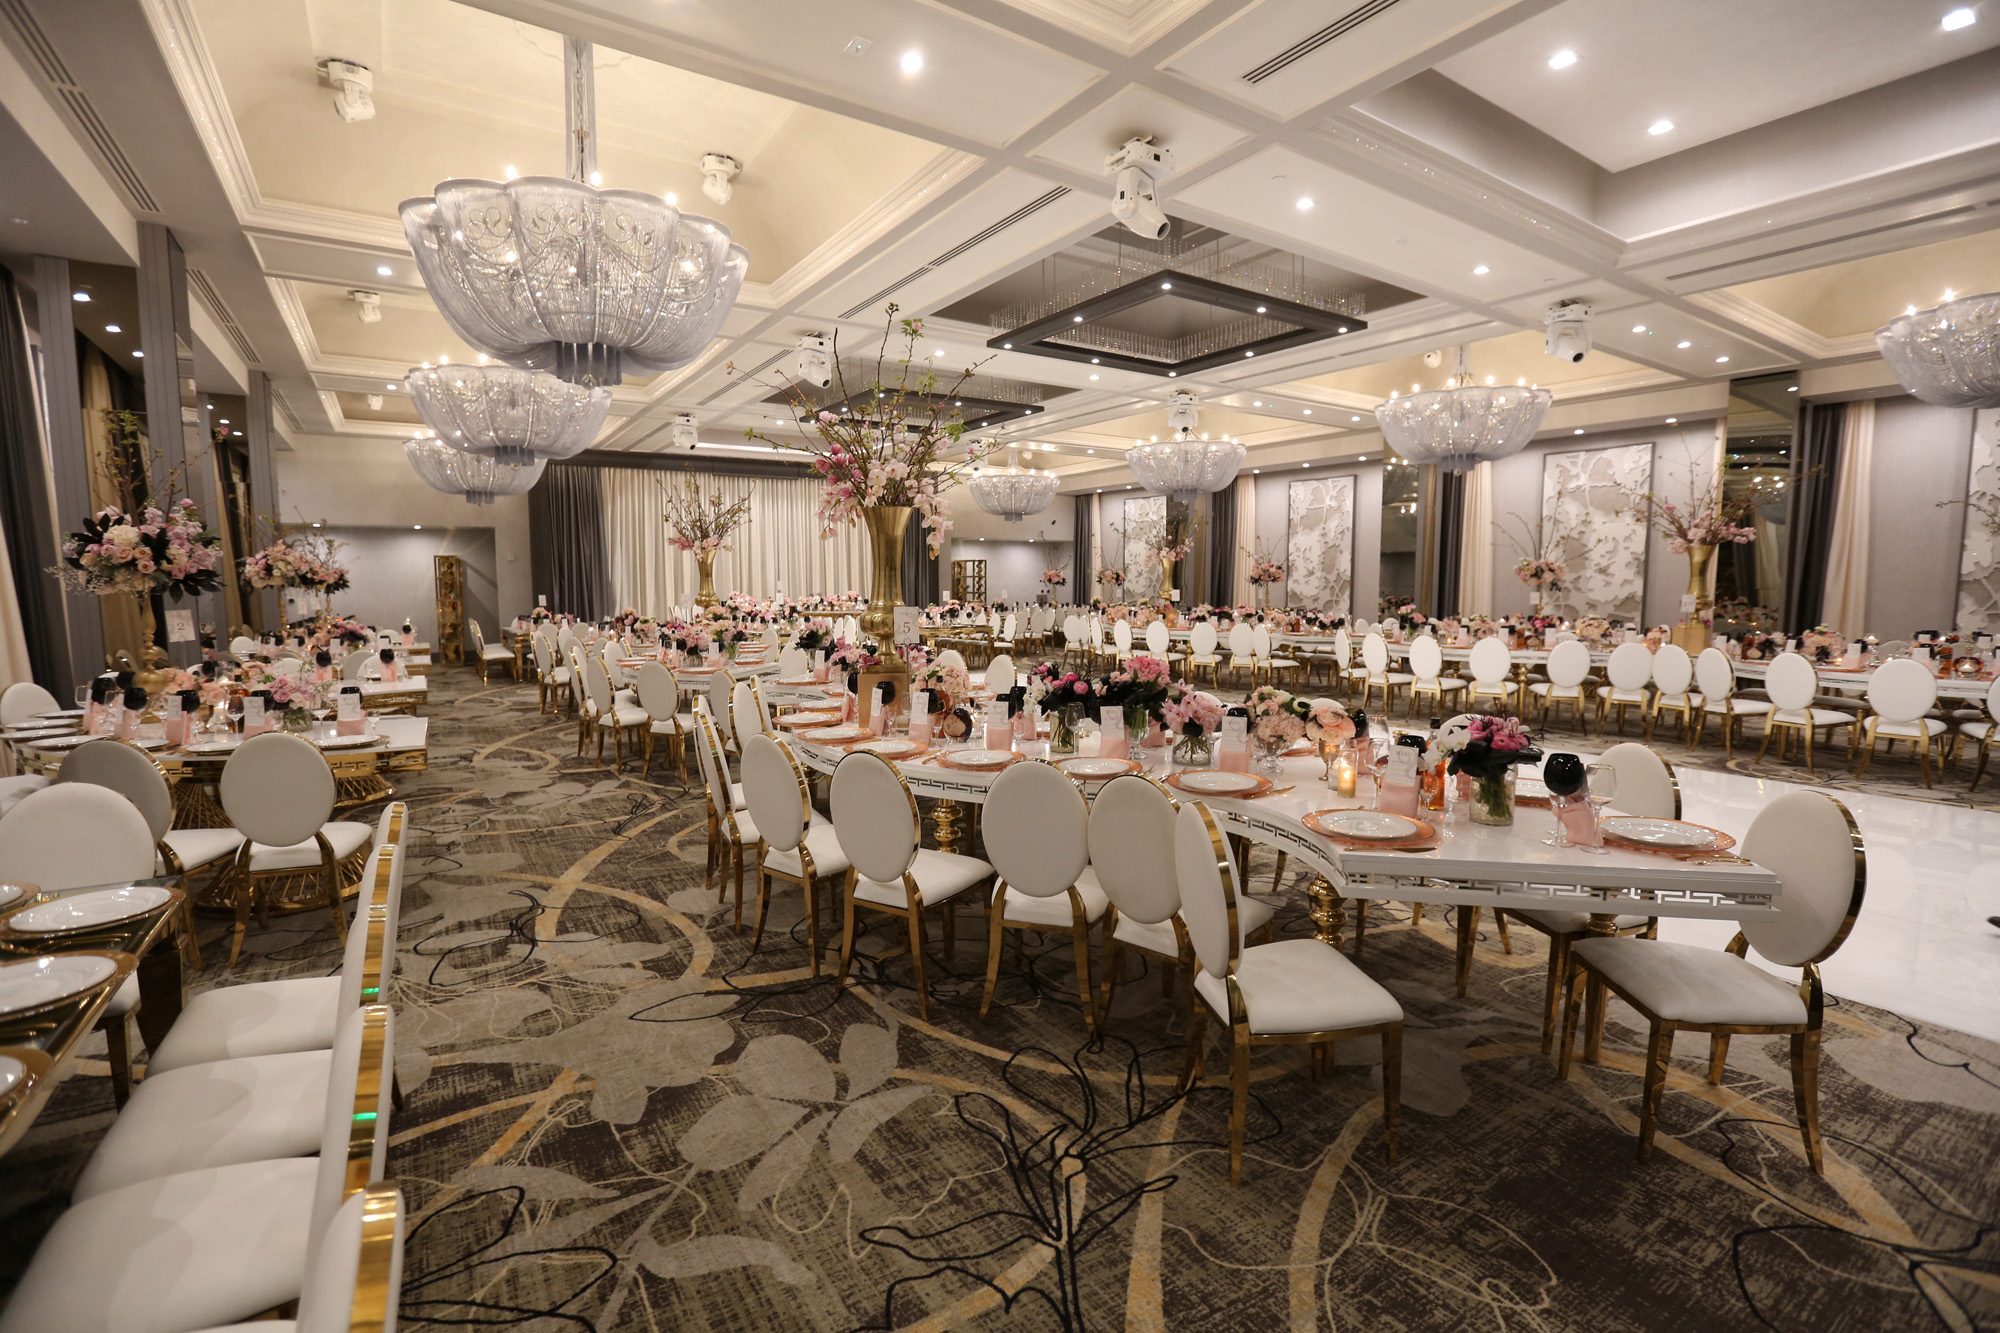 Modern wedding venue legacy ballroom labanquets view more in gallery junglespirit